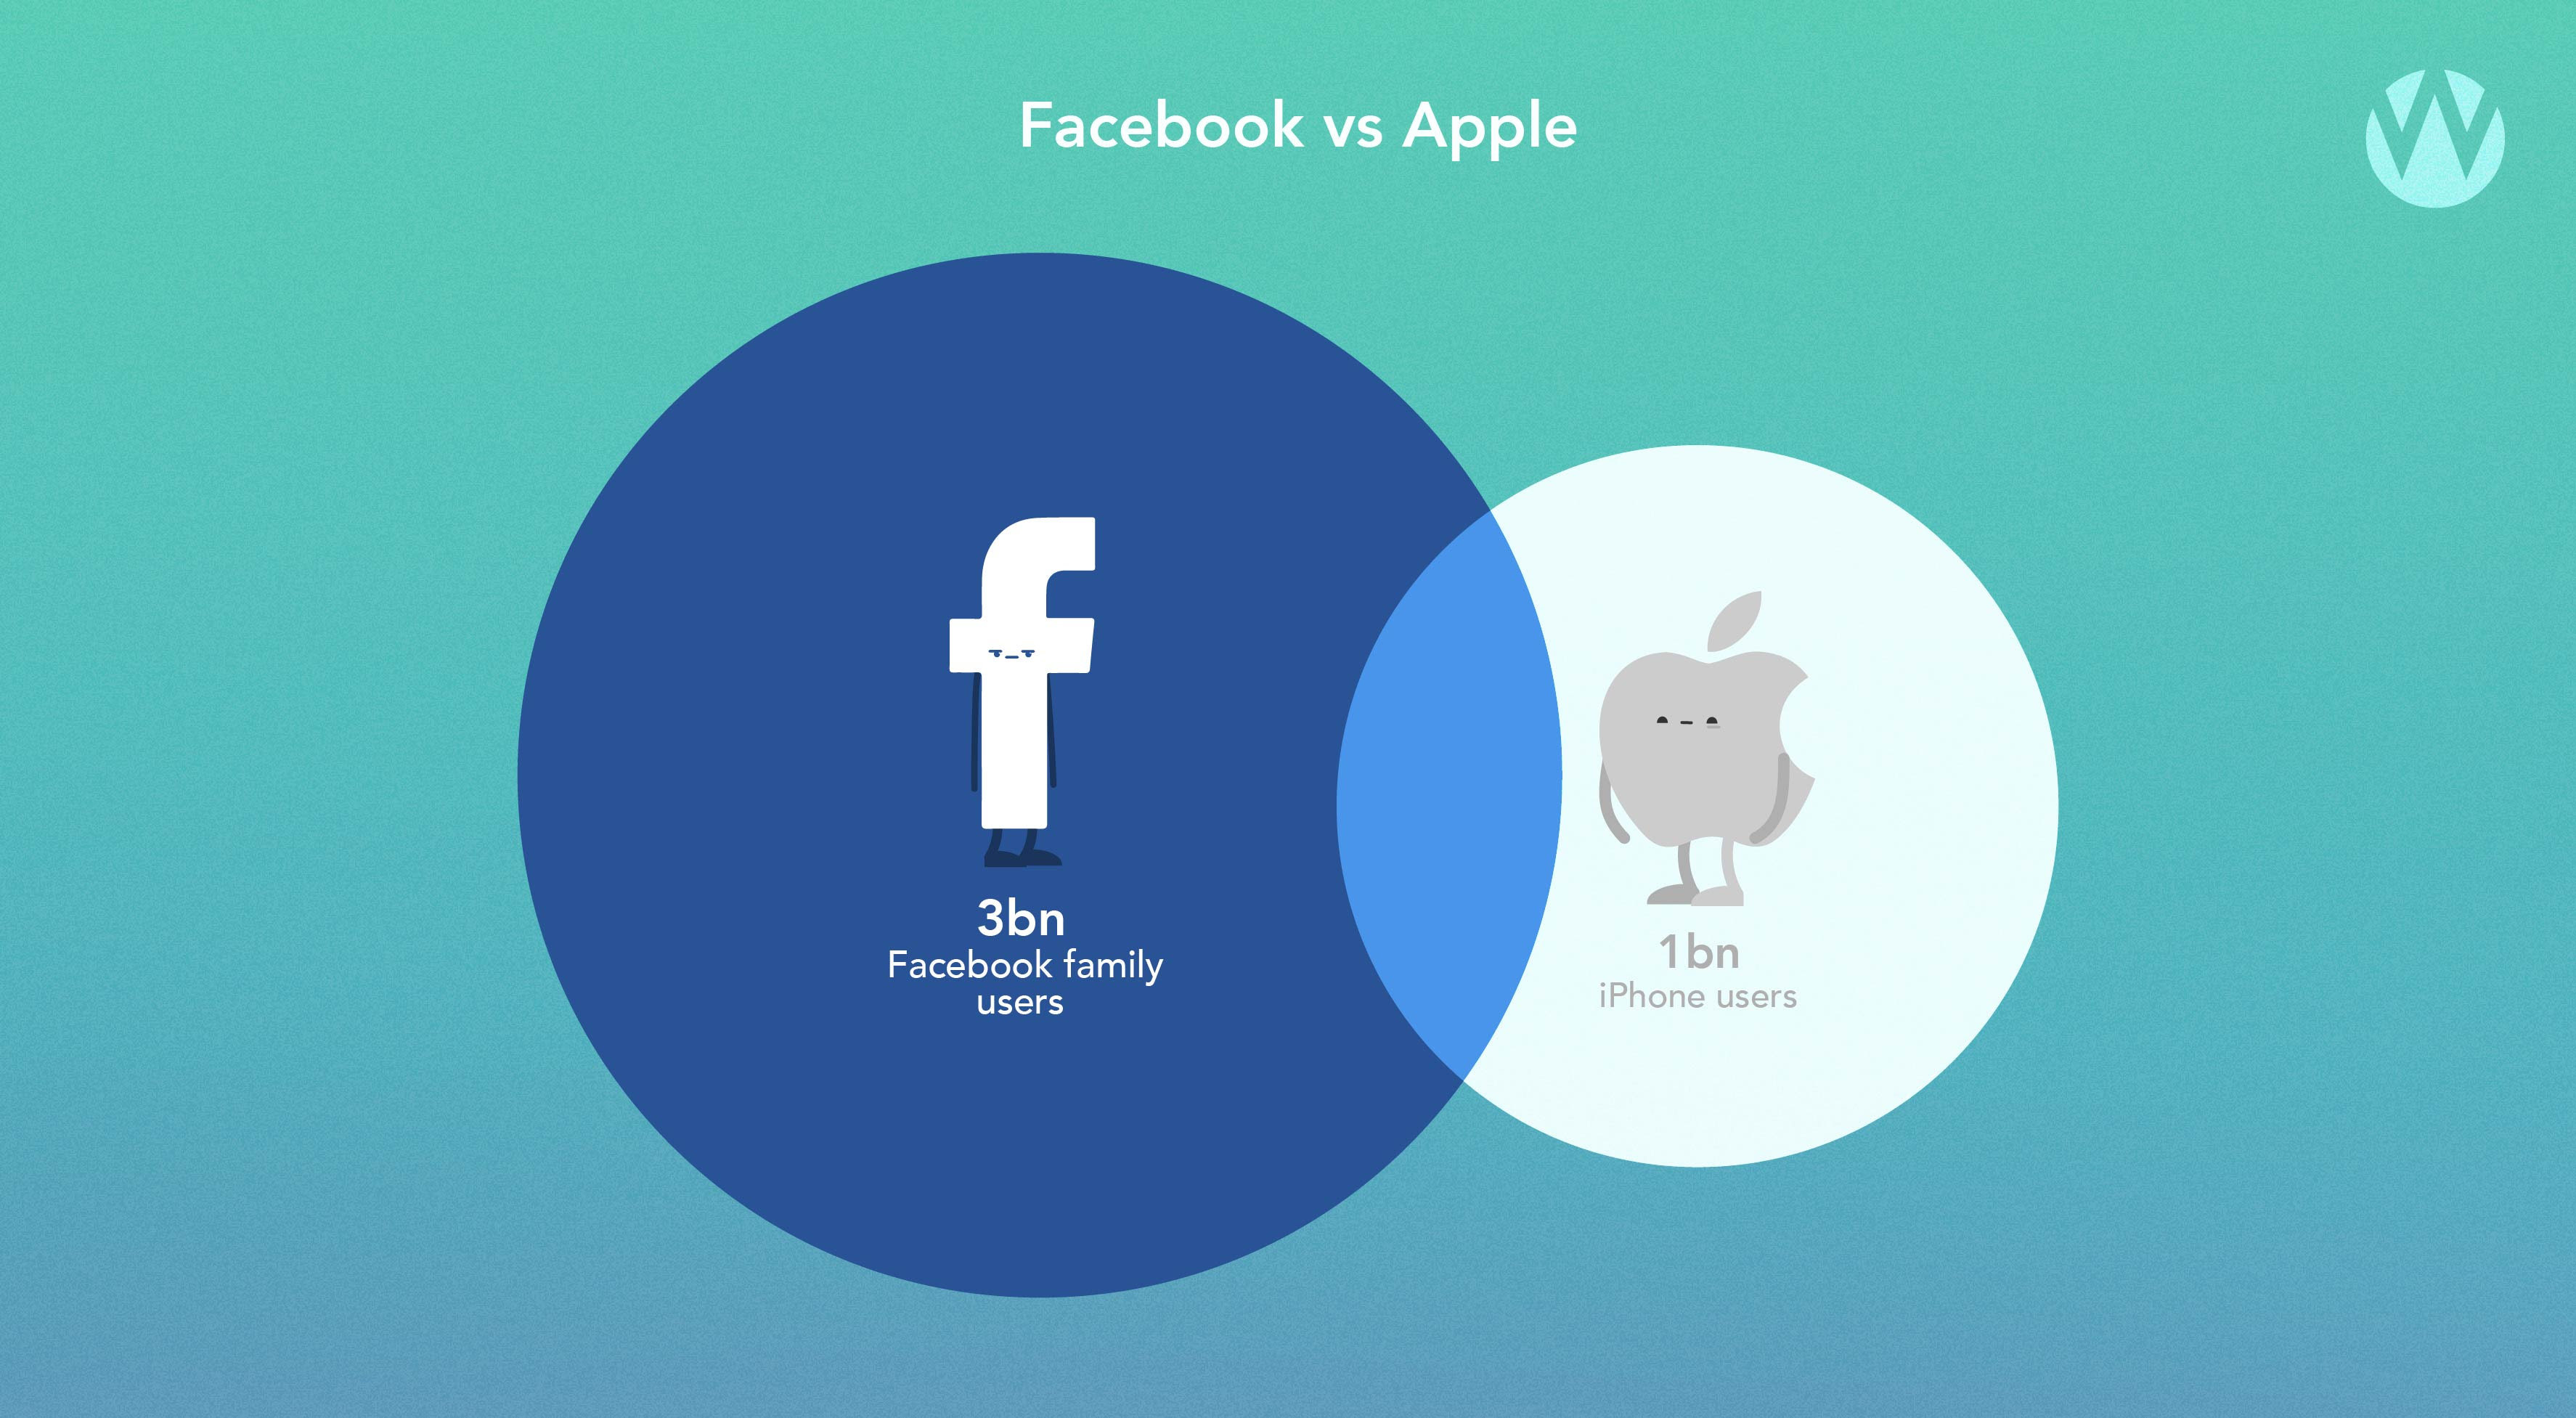 3bn facebook users and 1bn iphone users